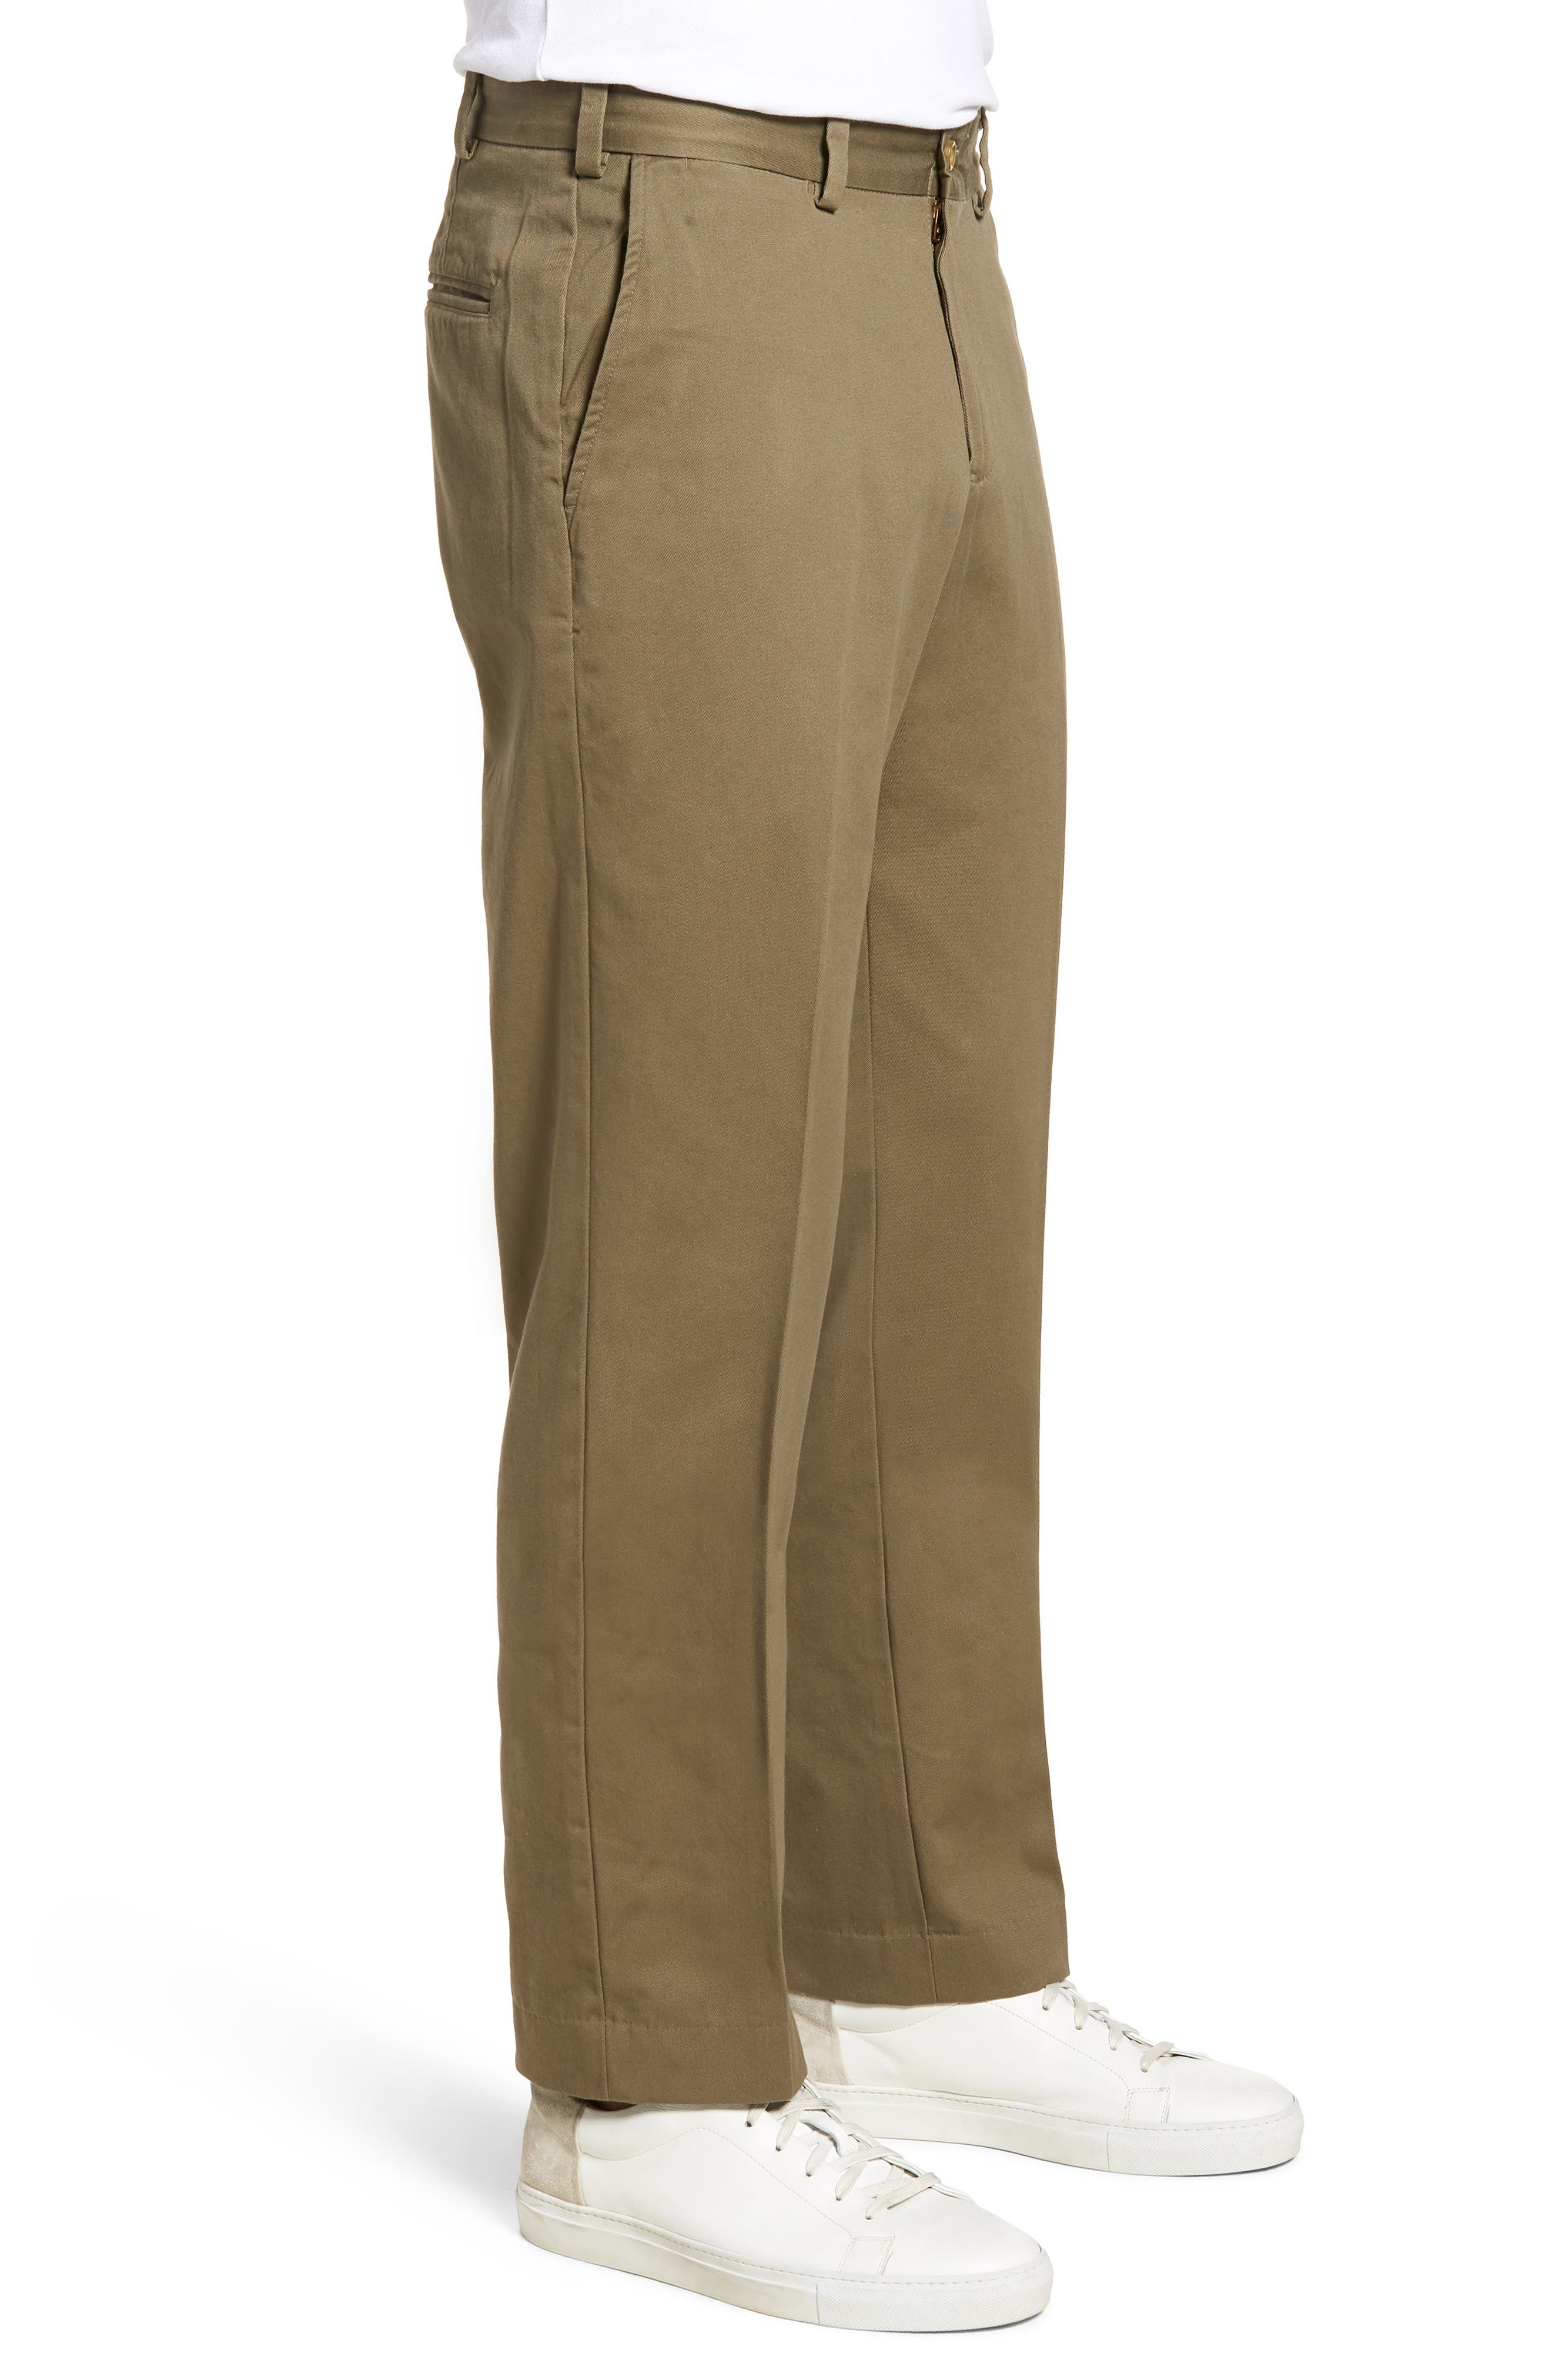 M3 Straight Fit Flat Front Vintage Twill Pants,                             Alternate thumbnail 3, color,                             Olive